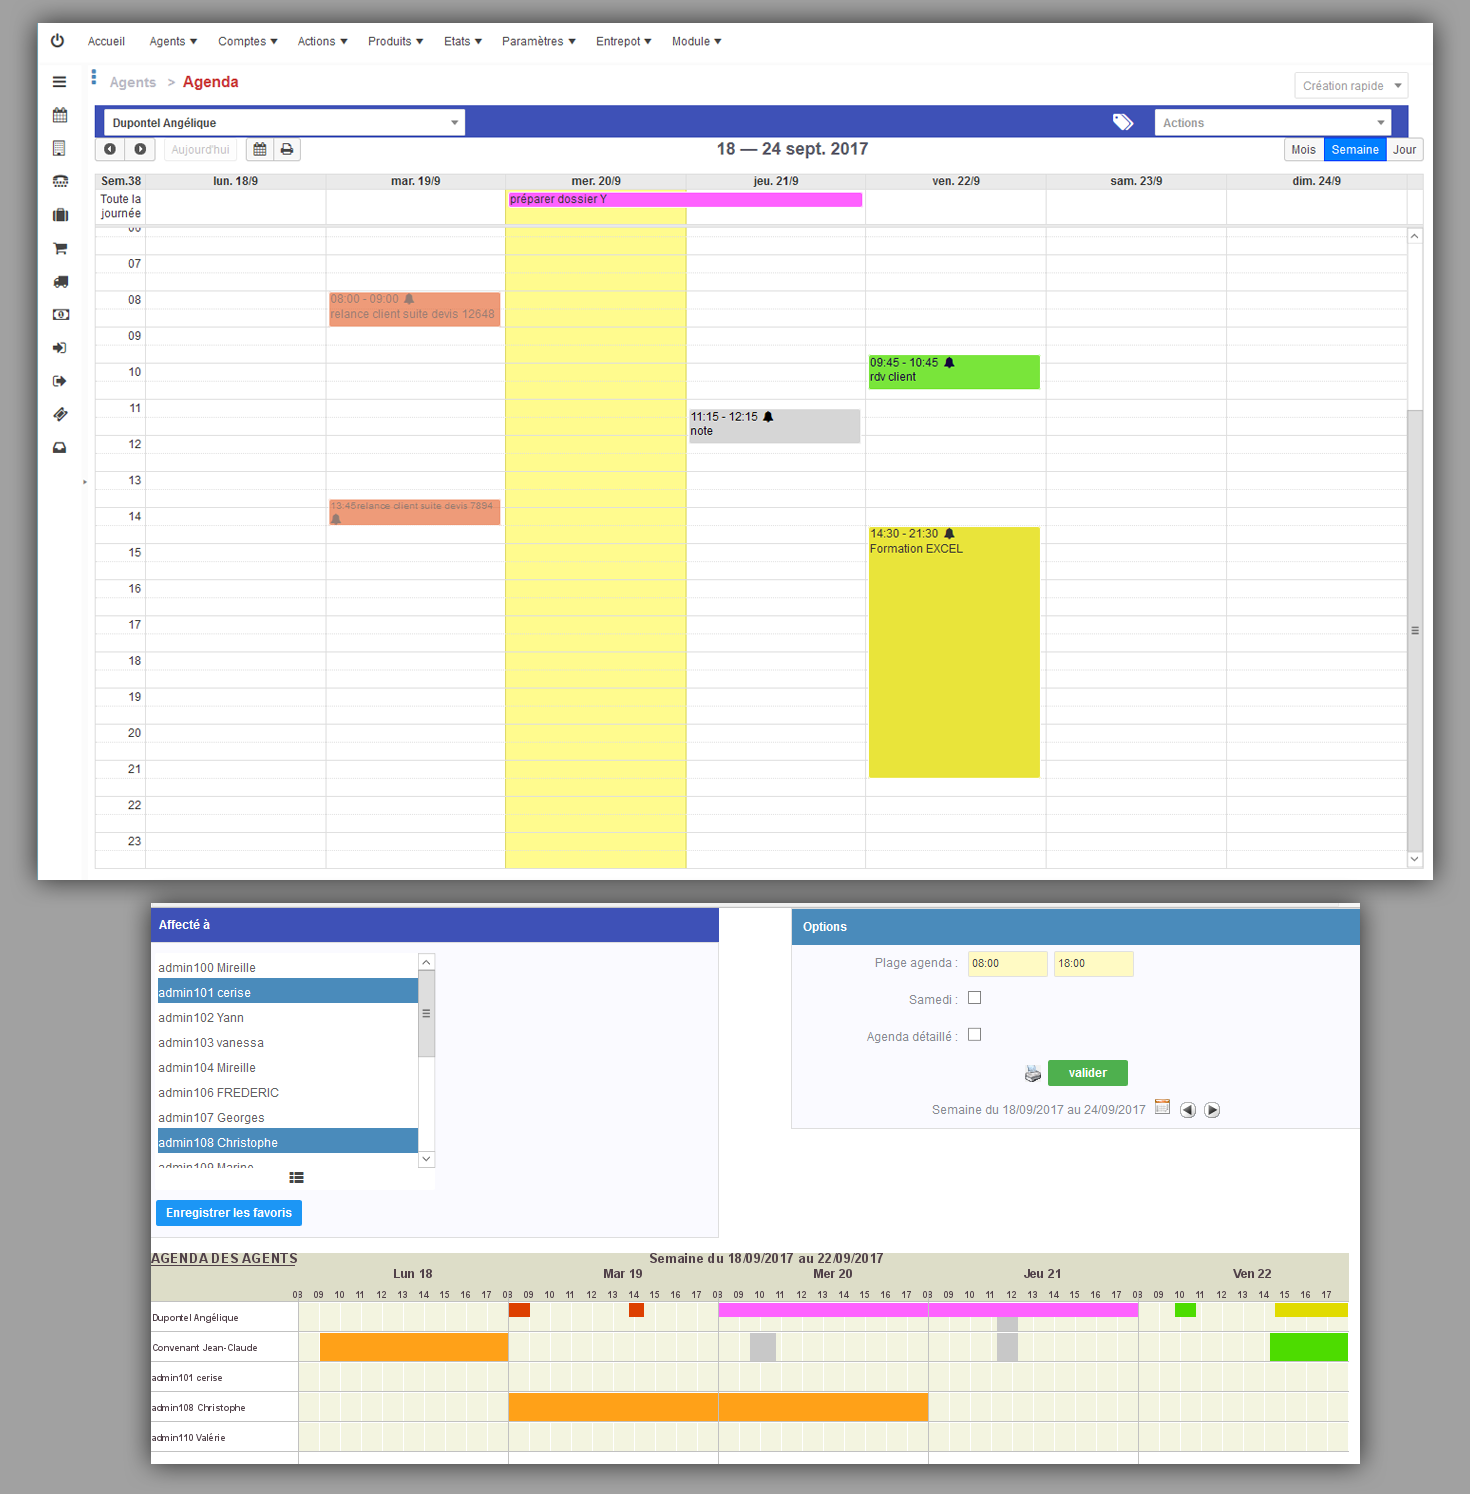 scheduling and shared calendars in drag / drop. Quickly create, recurring events, Google Sync. Rights Management (visible, change, delete)